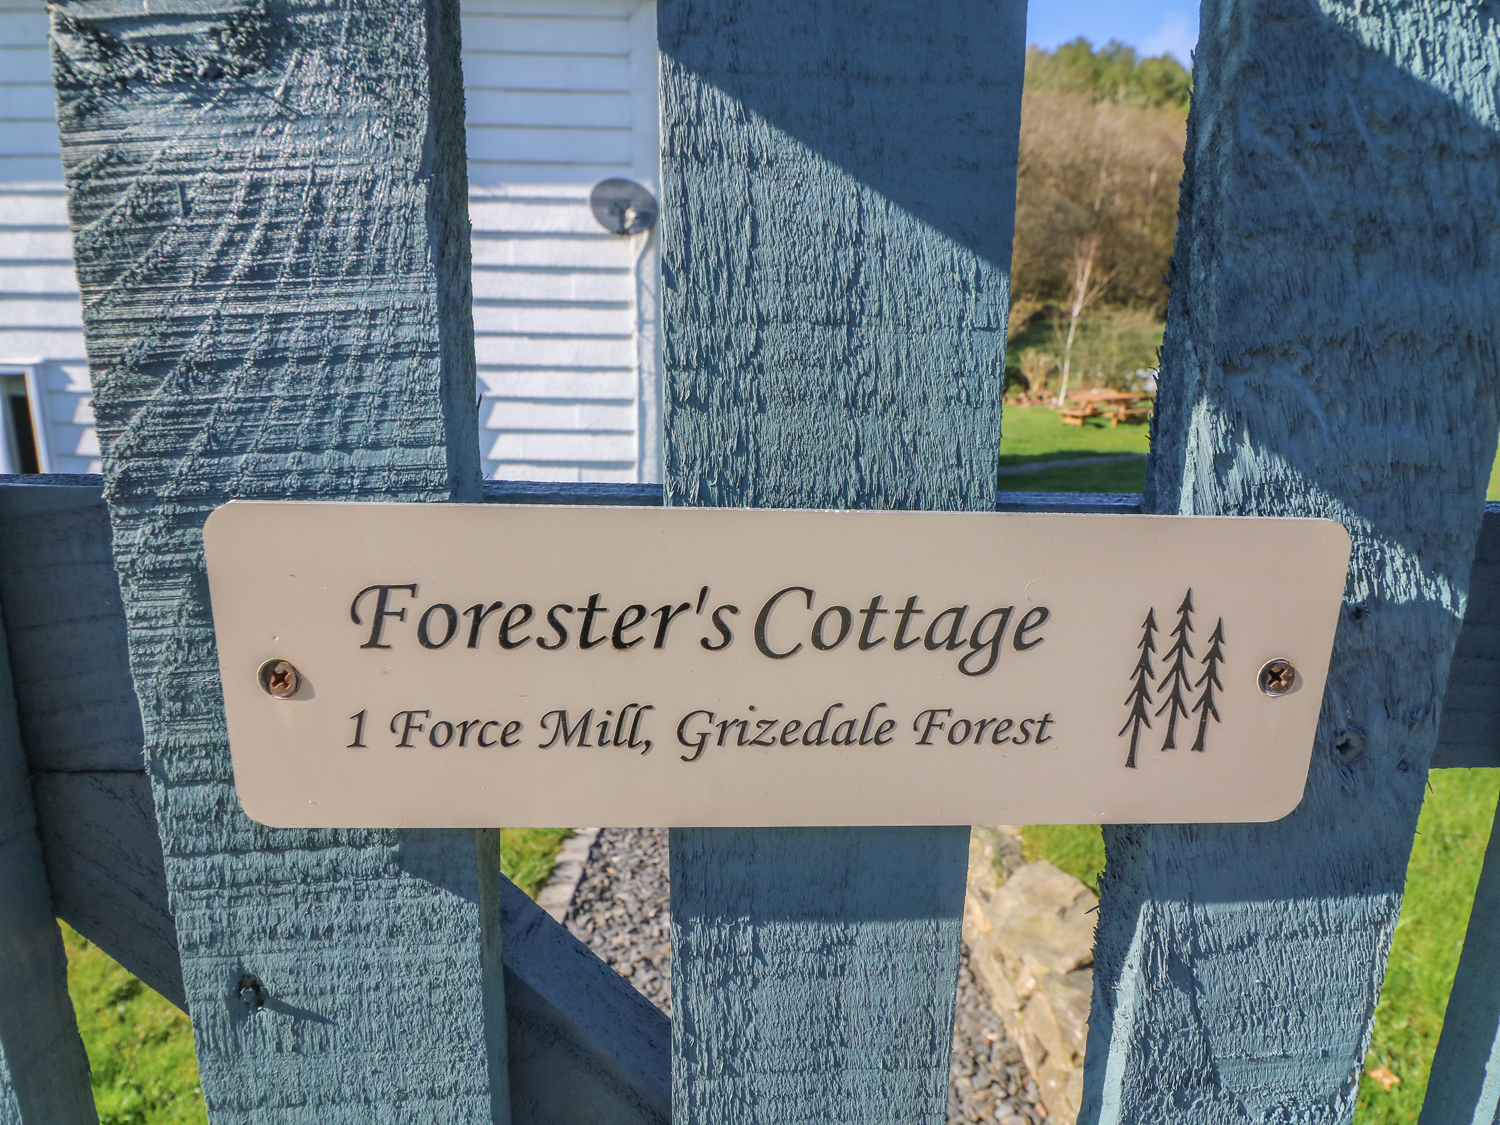 Foresters Cottage